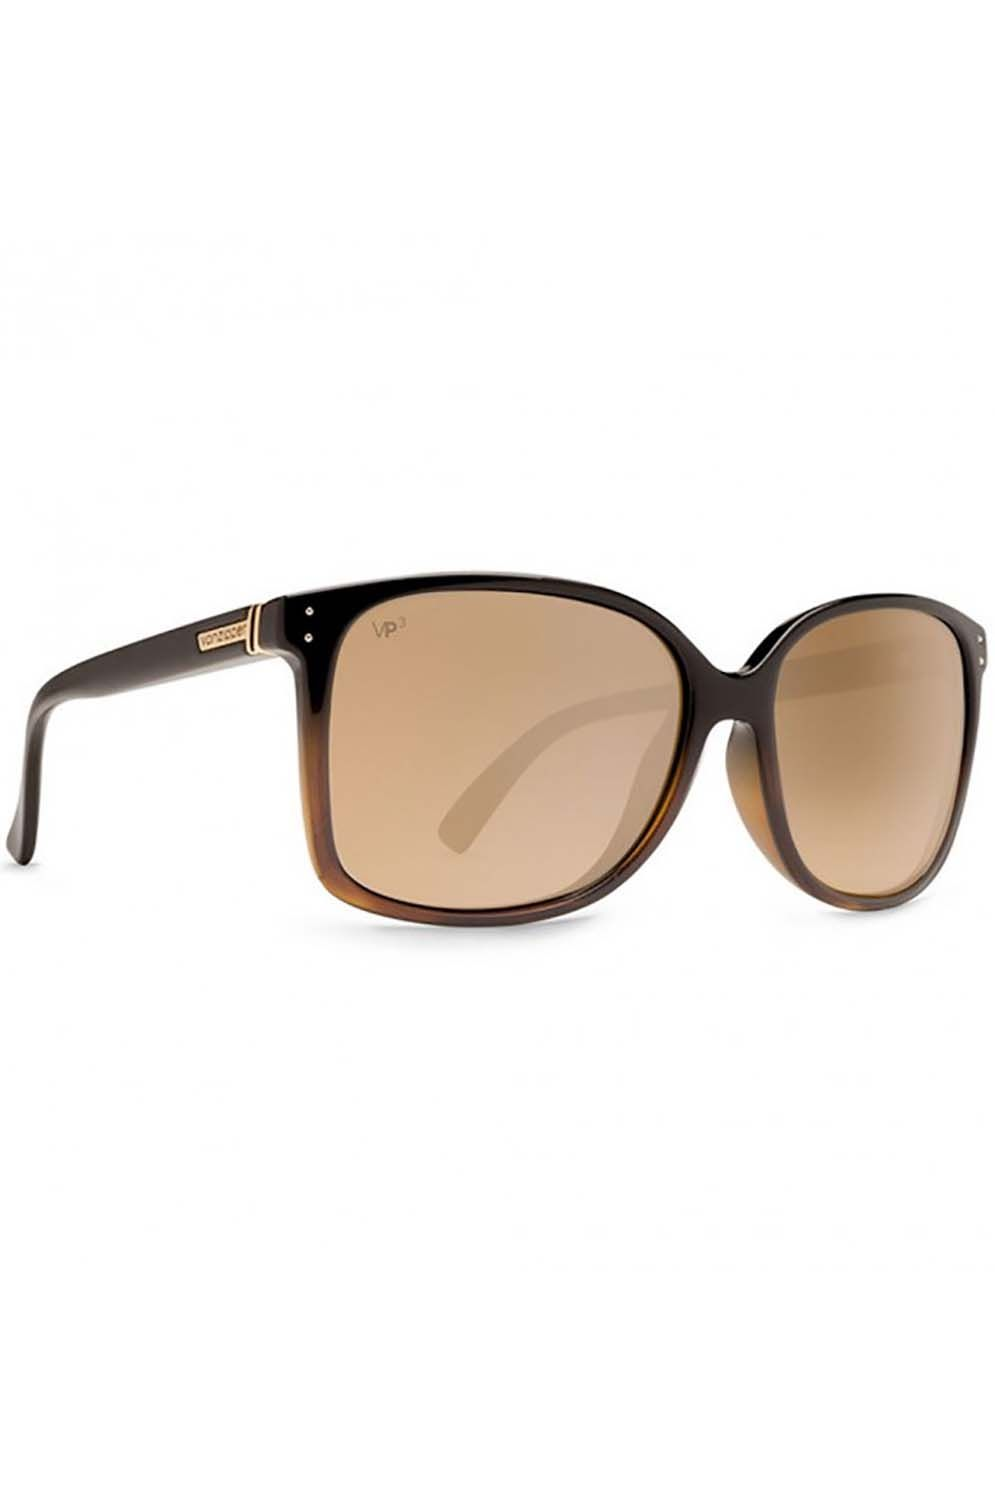 Oculos VonZipper CASTAWAY Muddled Fade Tan / Gold Glo Polar